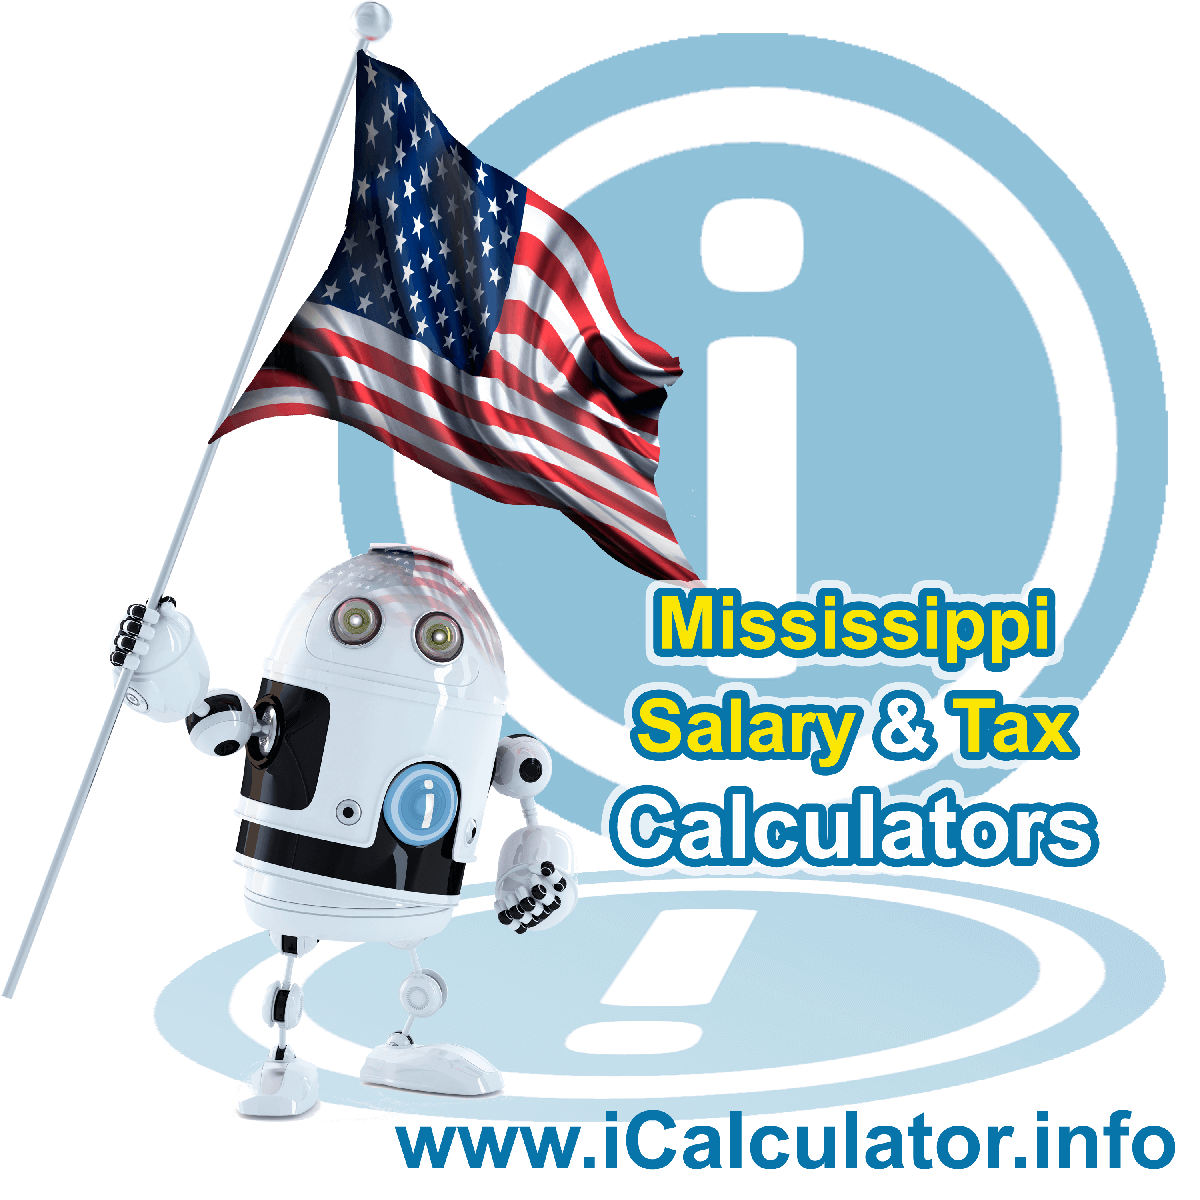 Mississippi Salary Calculator 2021 | iCalculator™ | The Mississippi Salary Calculator allows you to quickly calculate your salary after tax including Mississippi State Tax, Federal State Tax, Medicare Deductions, Social Security, Capital Gains and other income tax and salary deductions complete with supporting Mississippi state tax tables